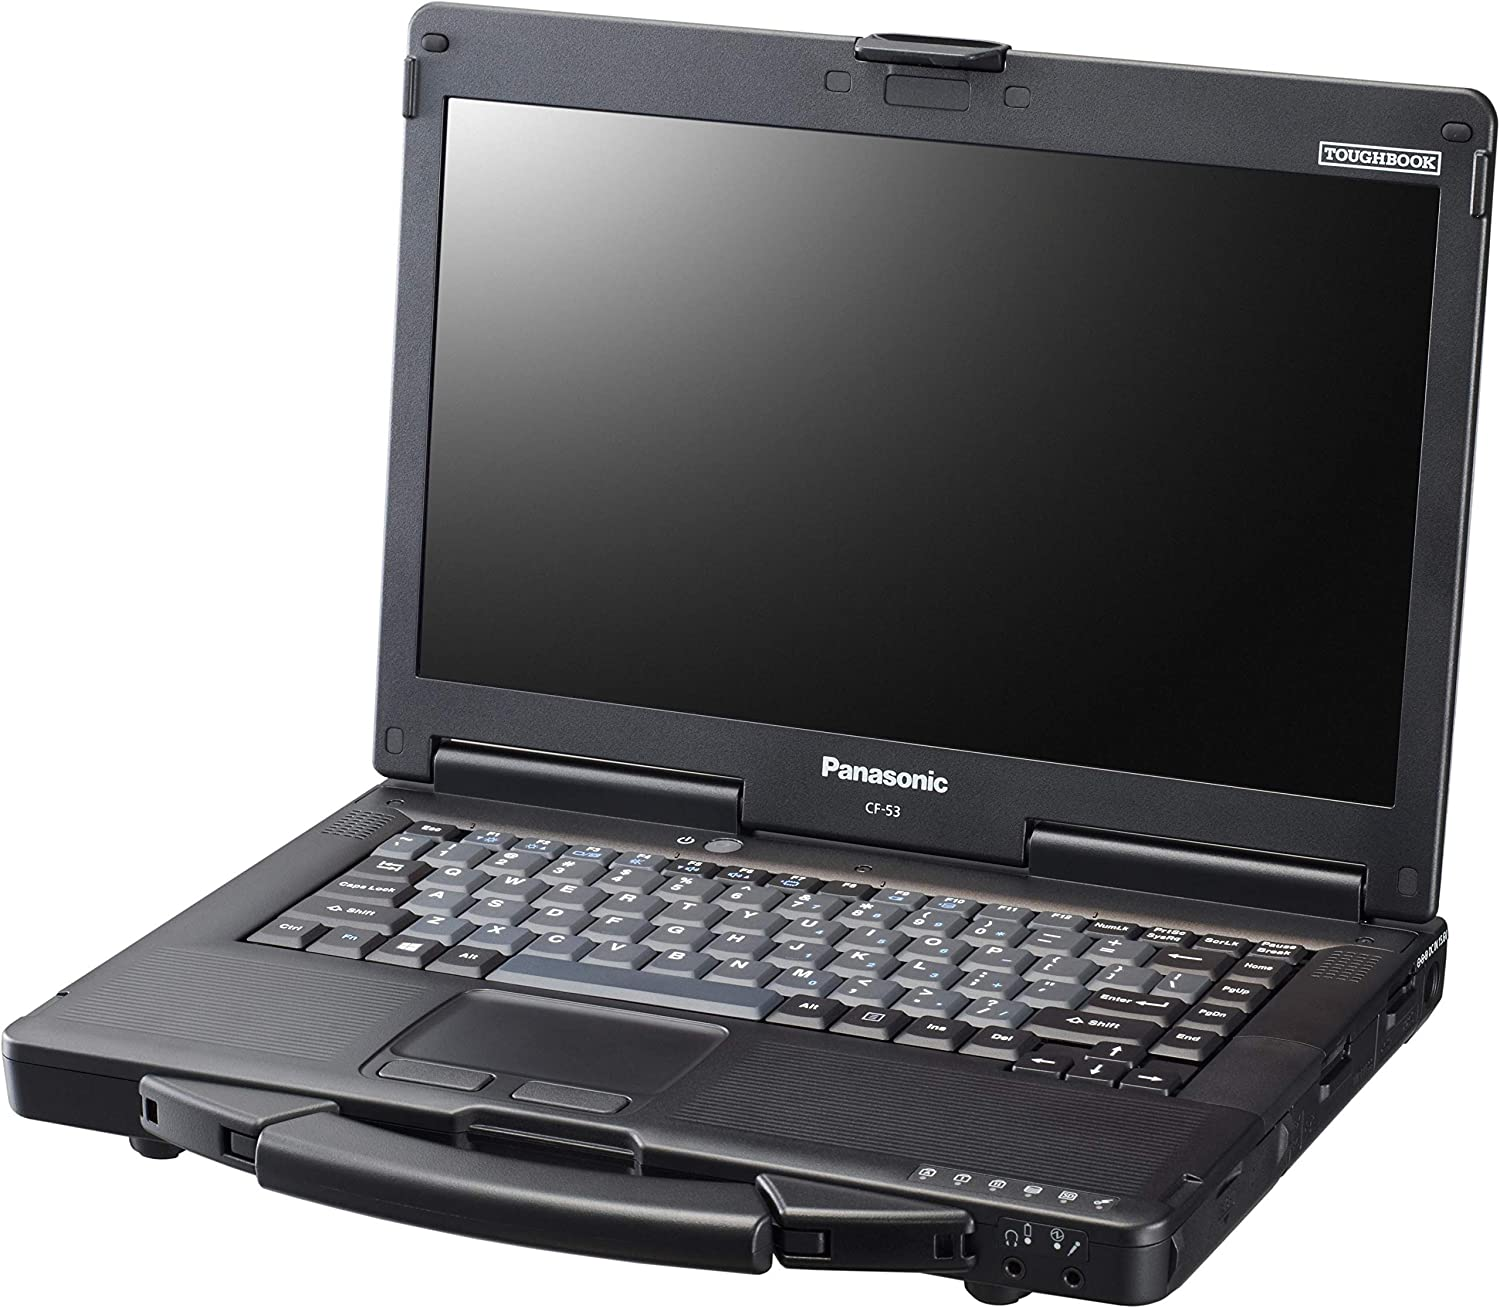 "Panasonic Toughbook CF-53 MK1, i5-2520M @2.5GHz, 14"" HD, 8GB, 240GB SSD, Windows 10 Pro, WiFi, Bluetooth, DVD-RW (Renewed)"